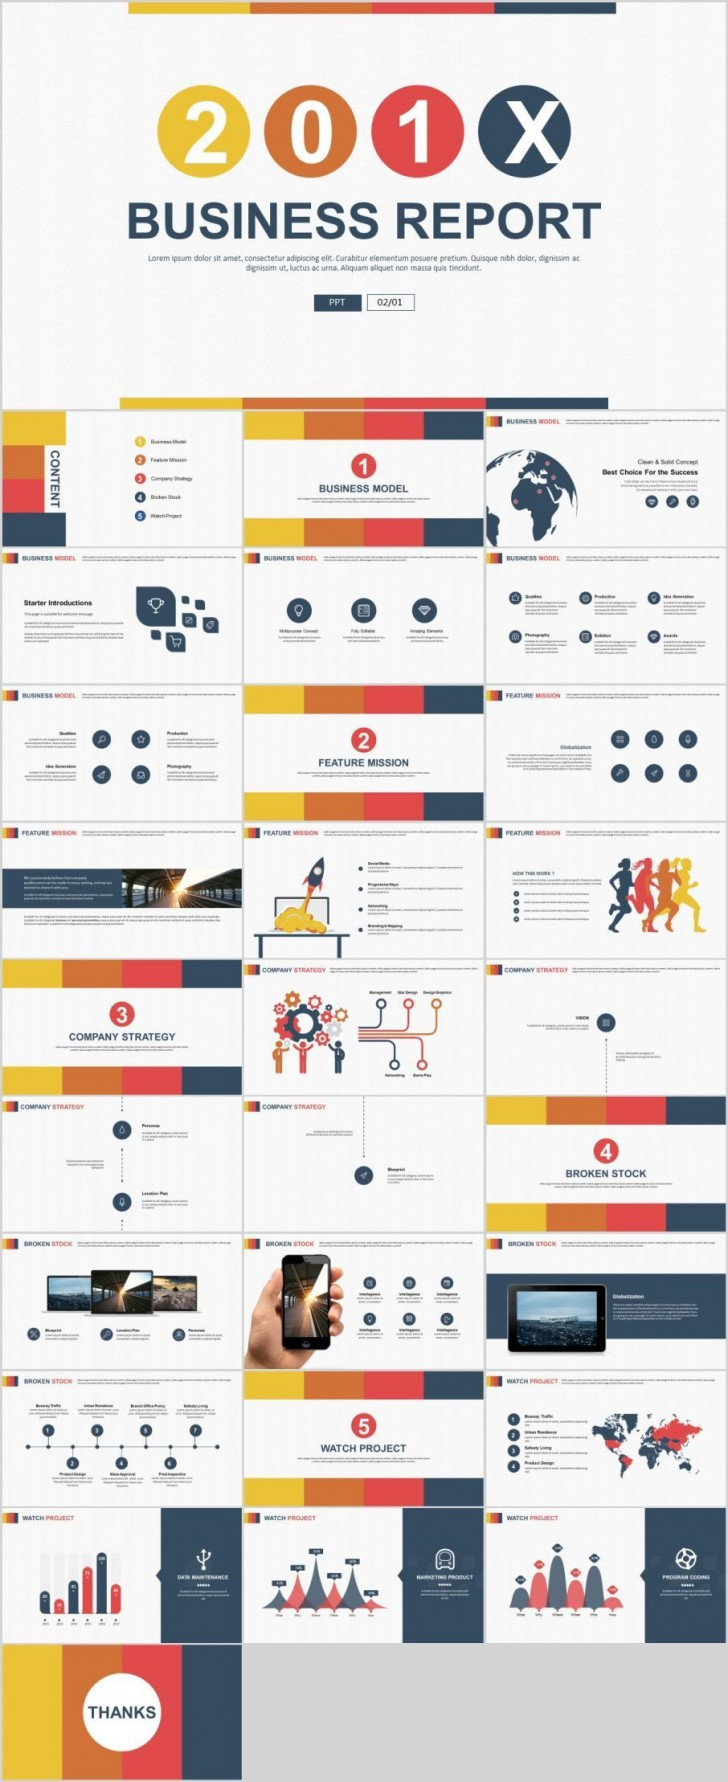 003 Remarkable Timeline Template Presentationgo Idea 728